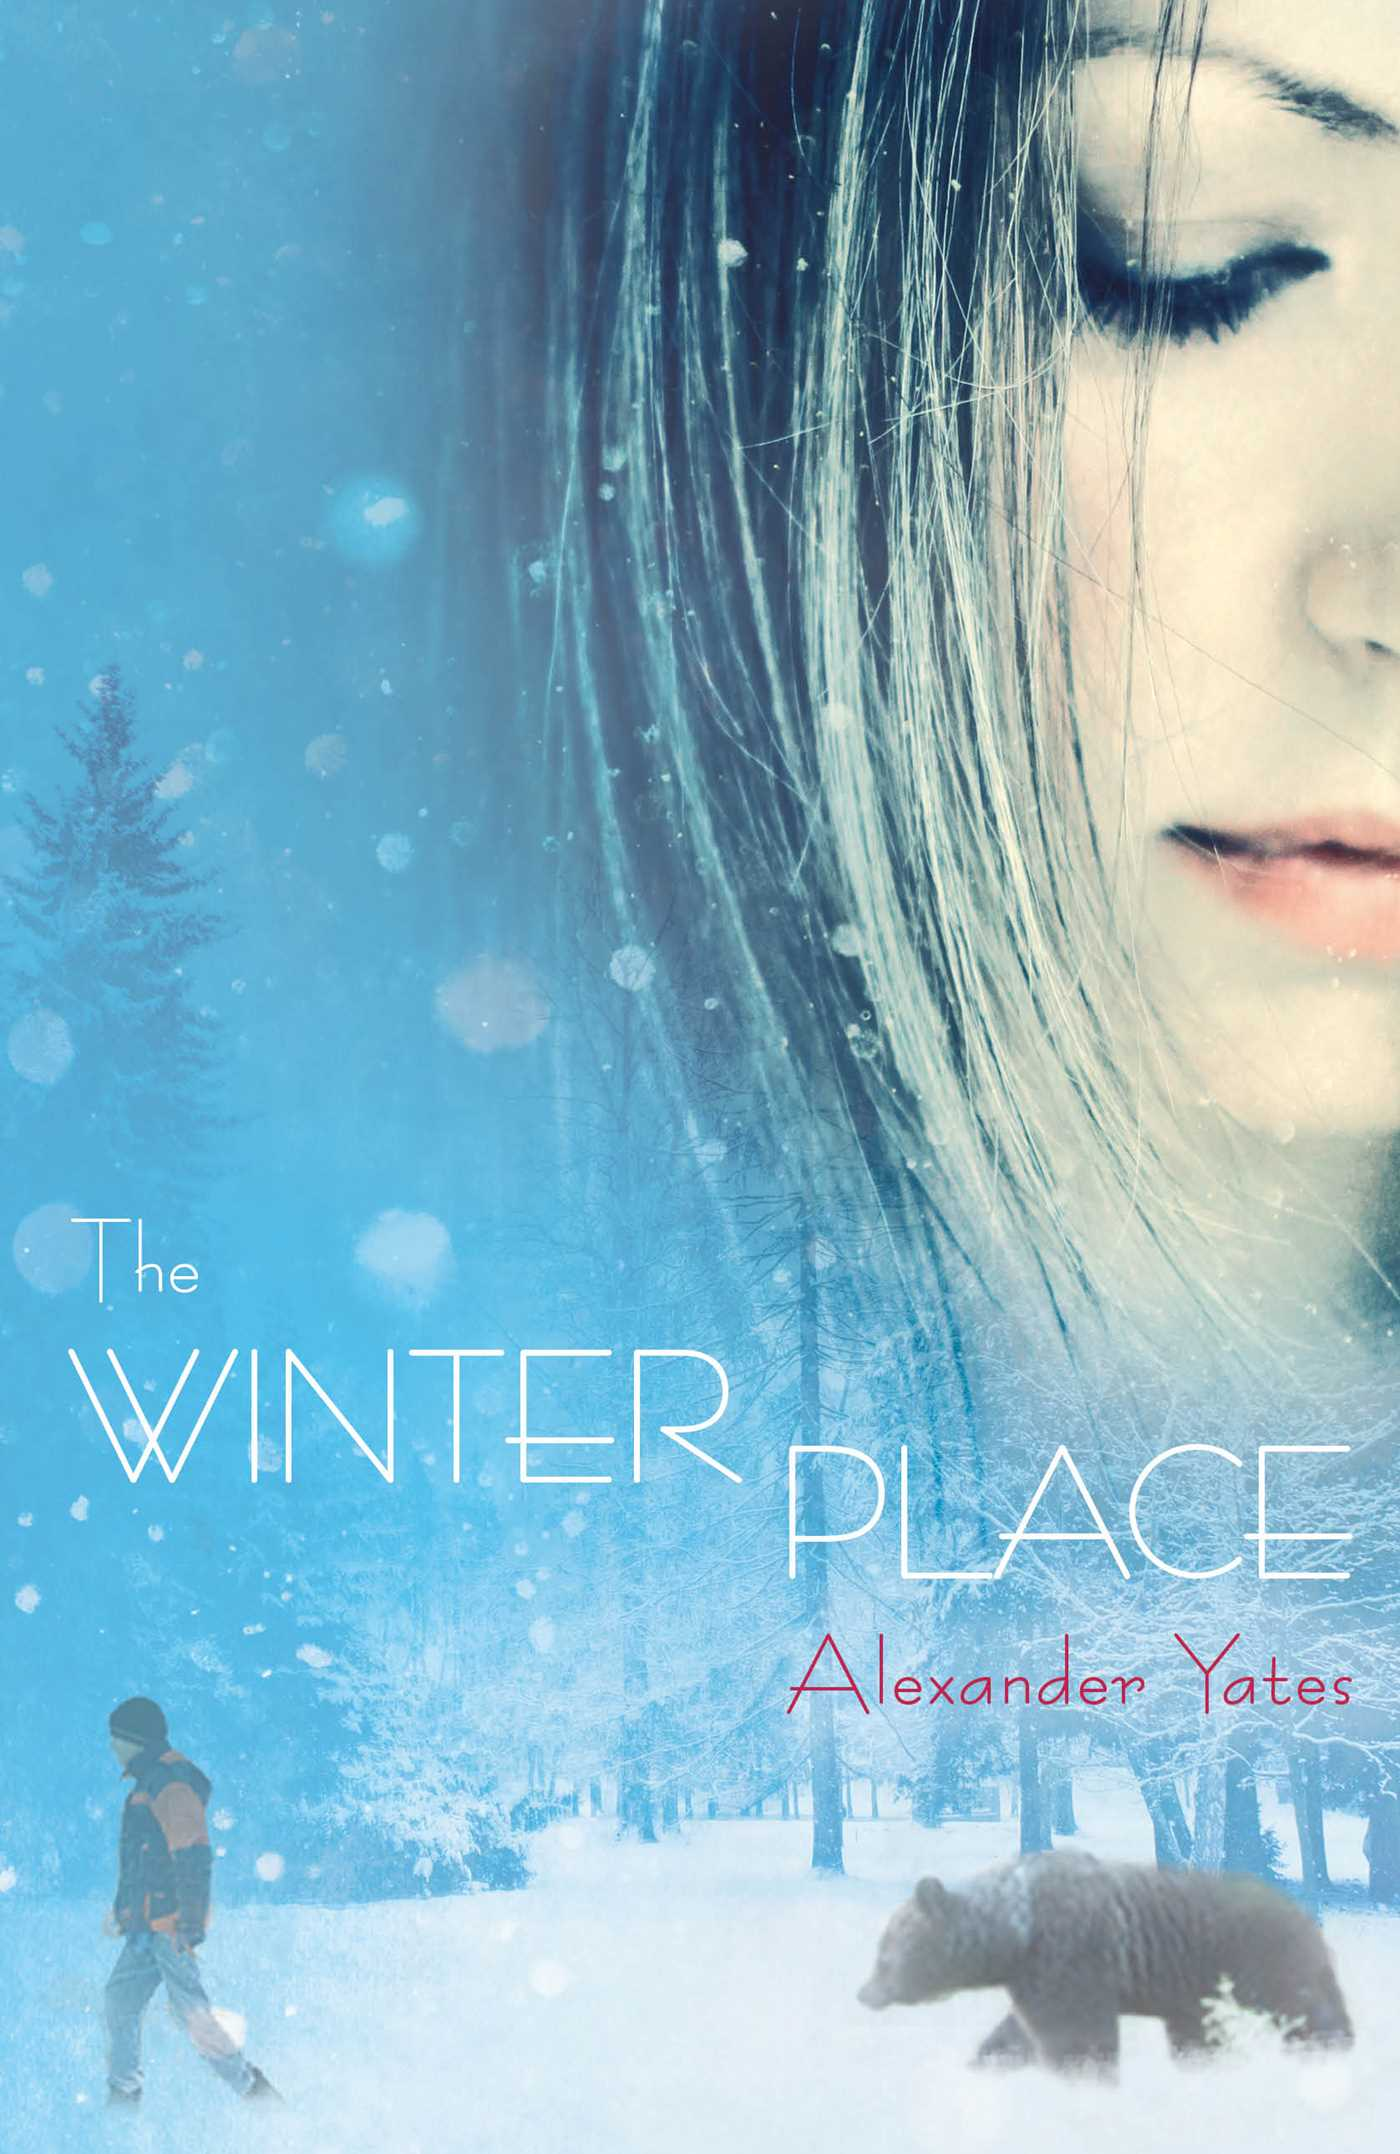 The winter place 9781481419826 hr